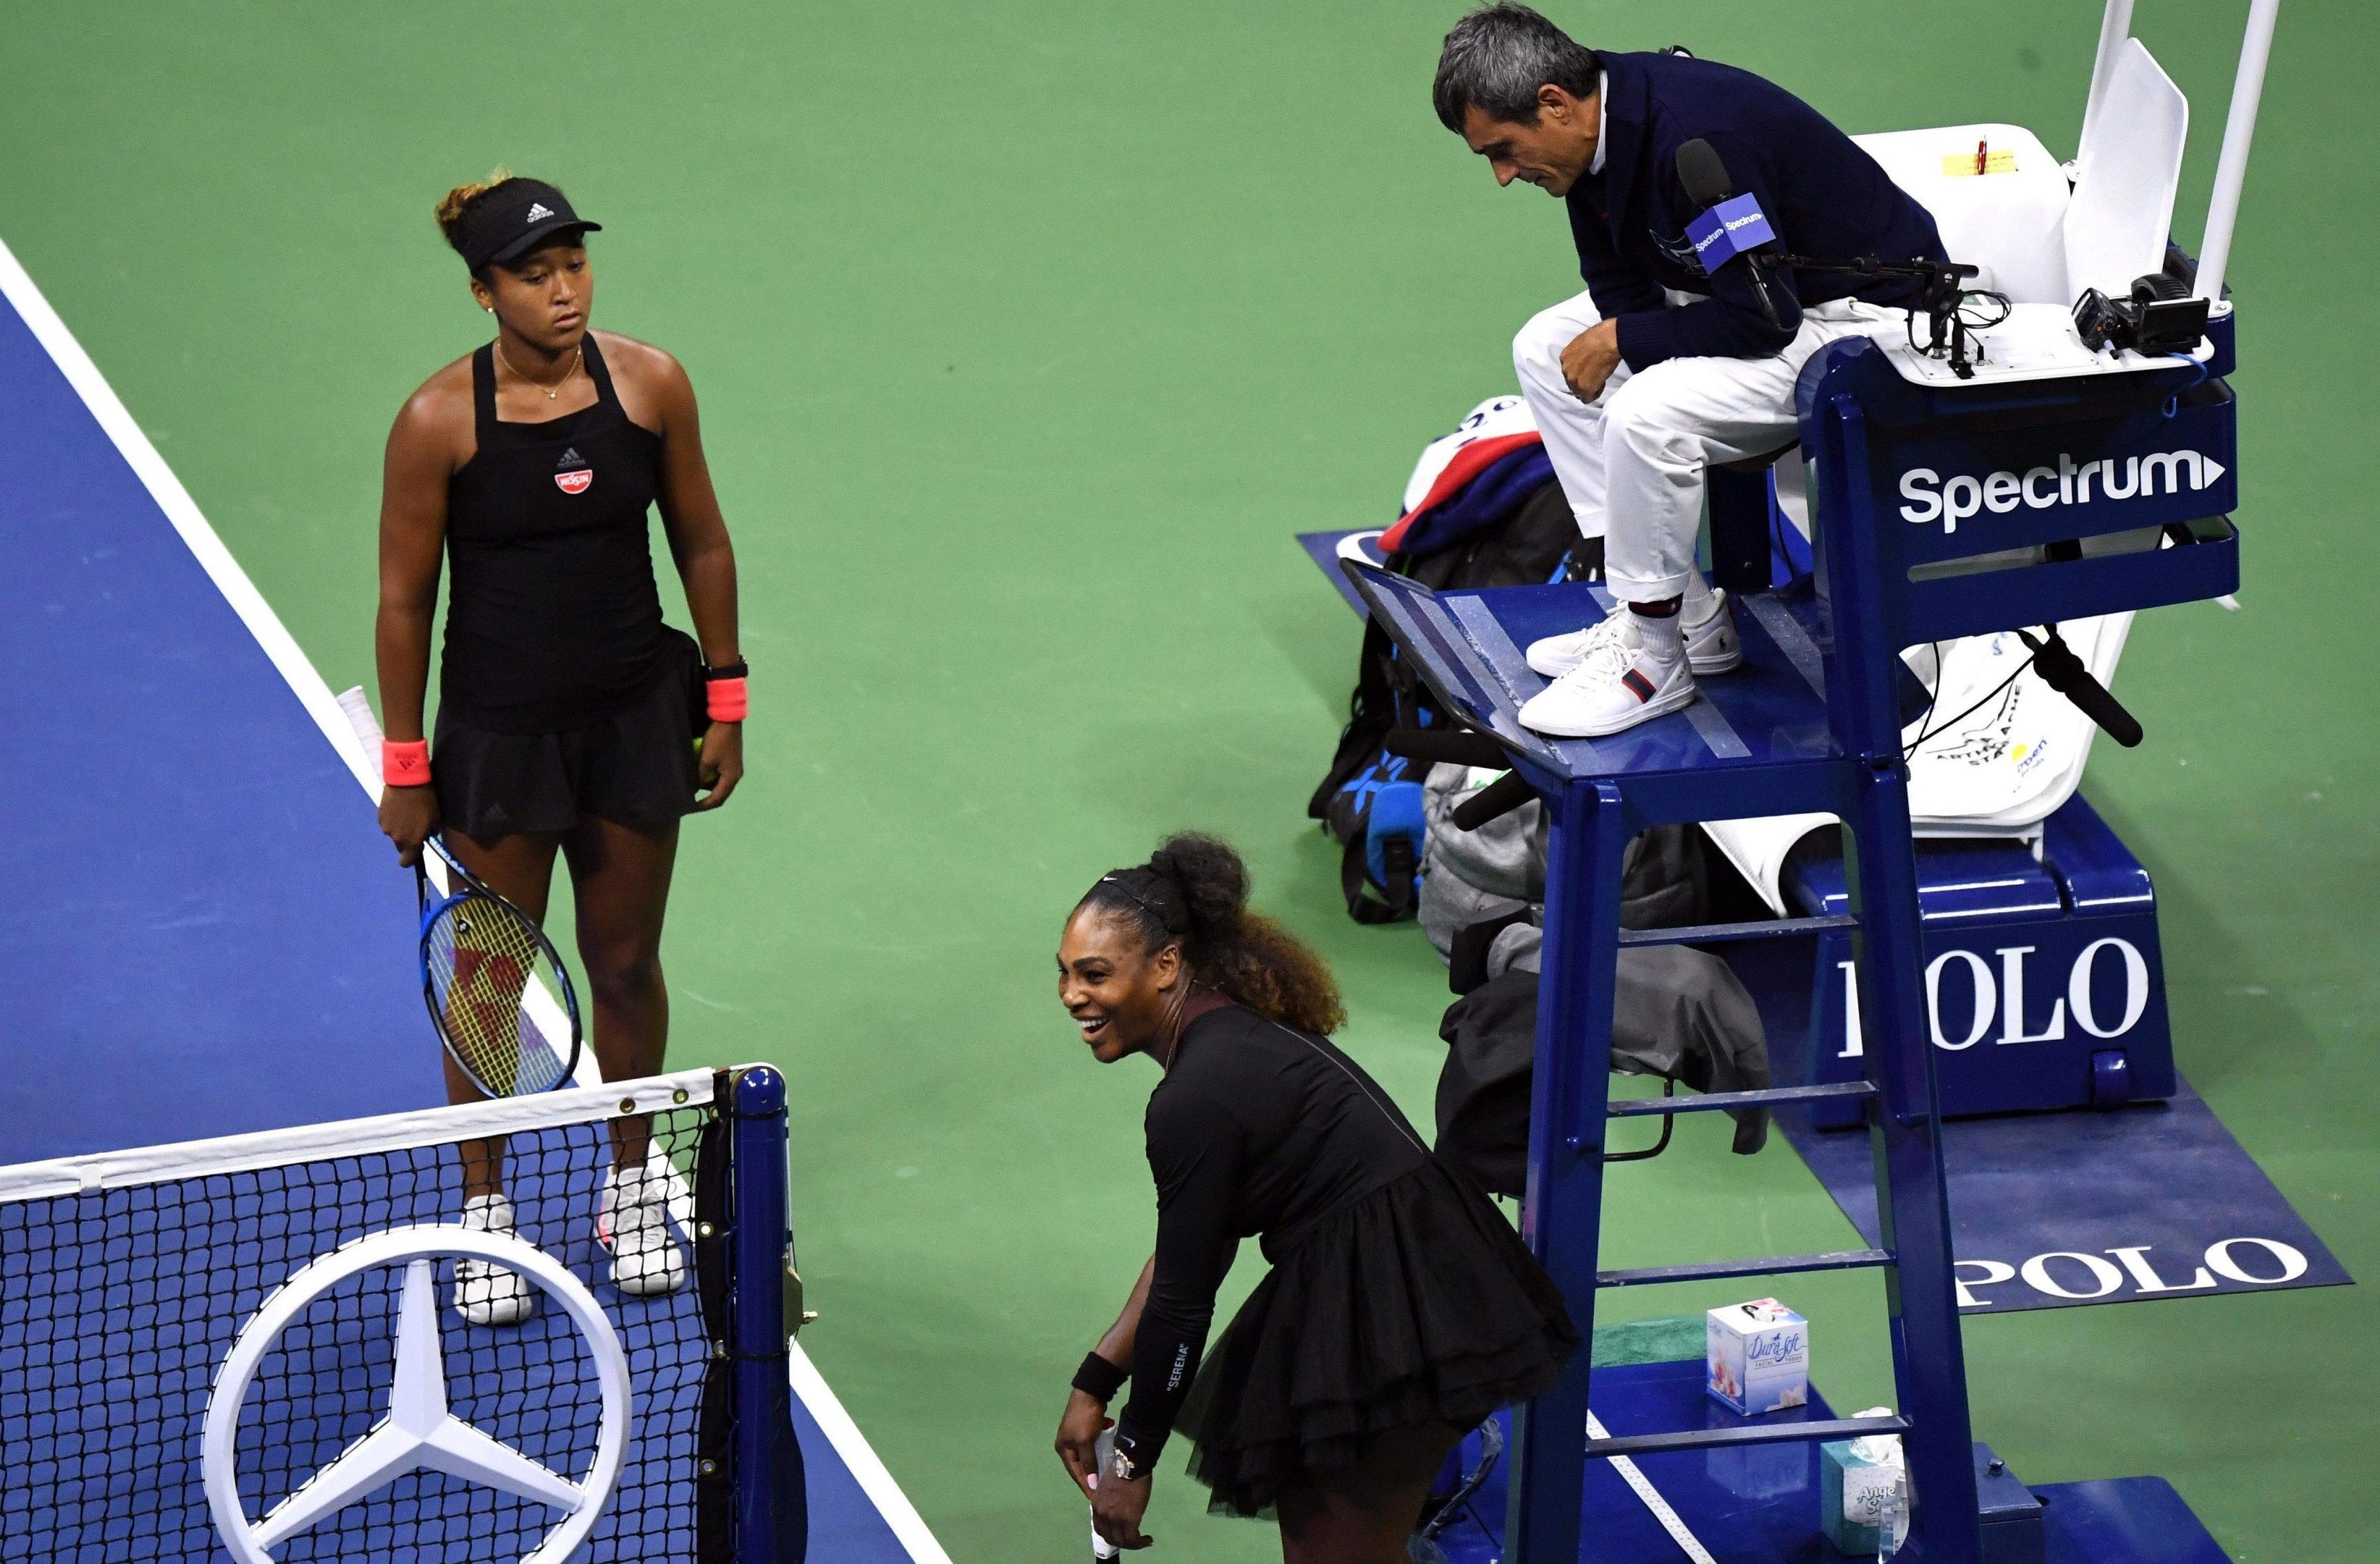 Eventual winner Naomi Osaka looks on stunned at Serena Williams' dispute